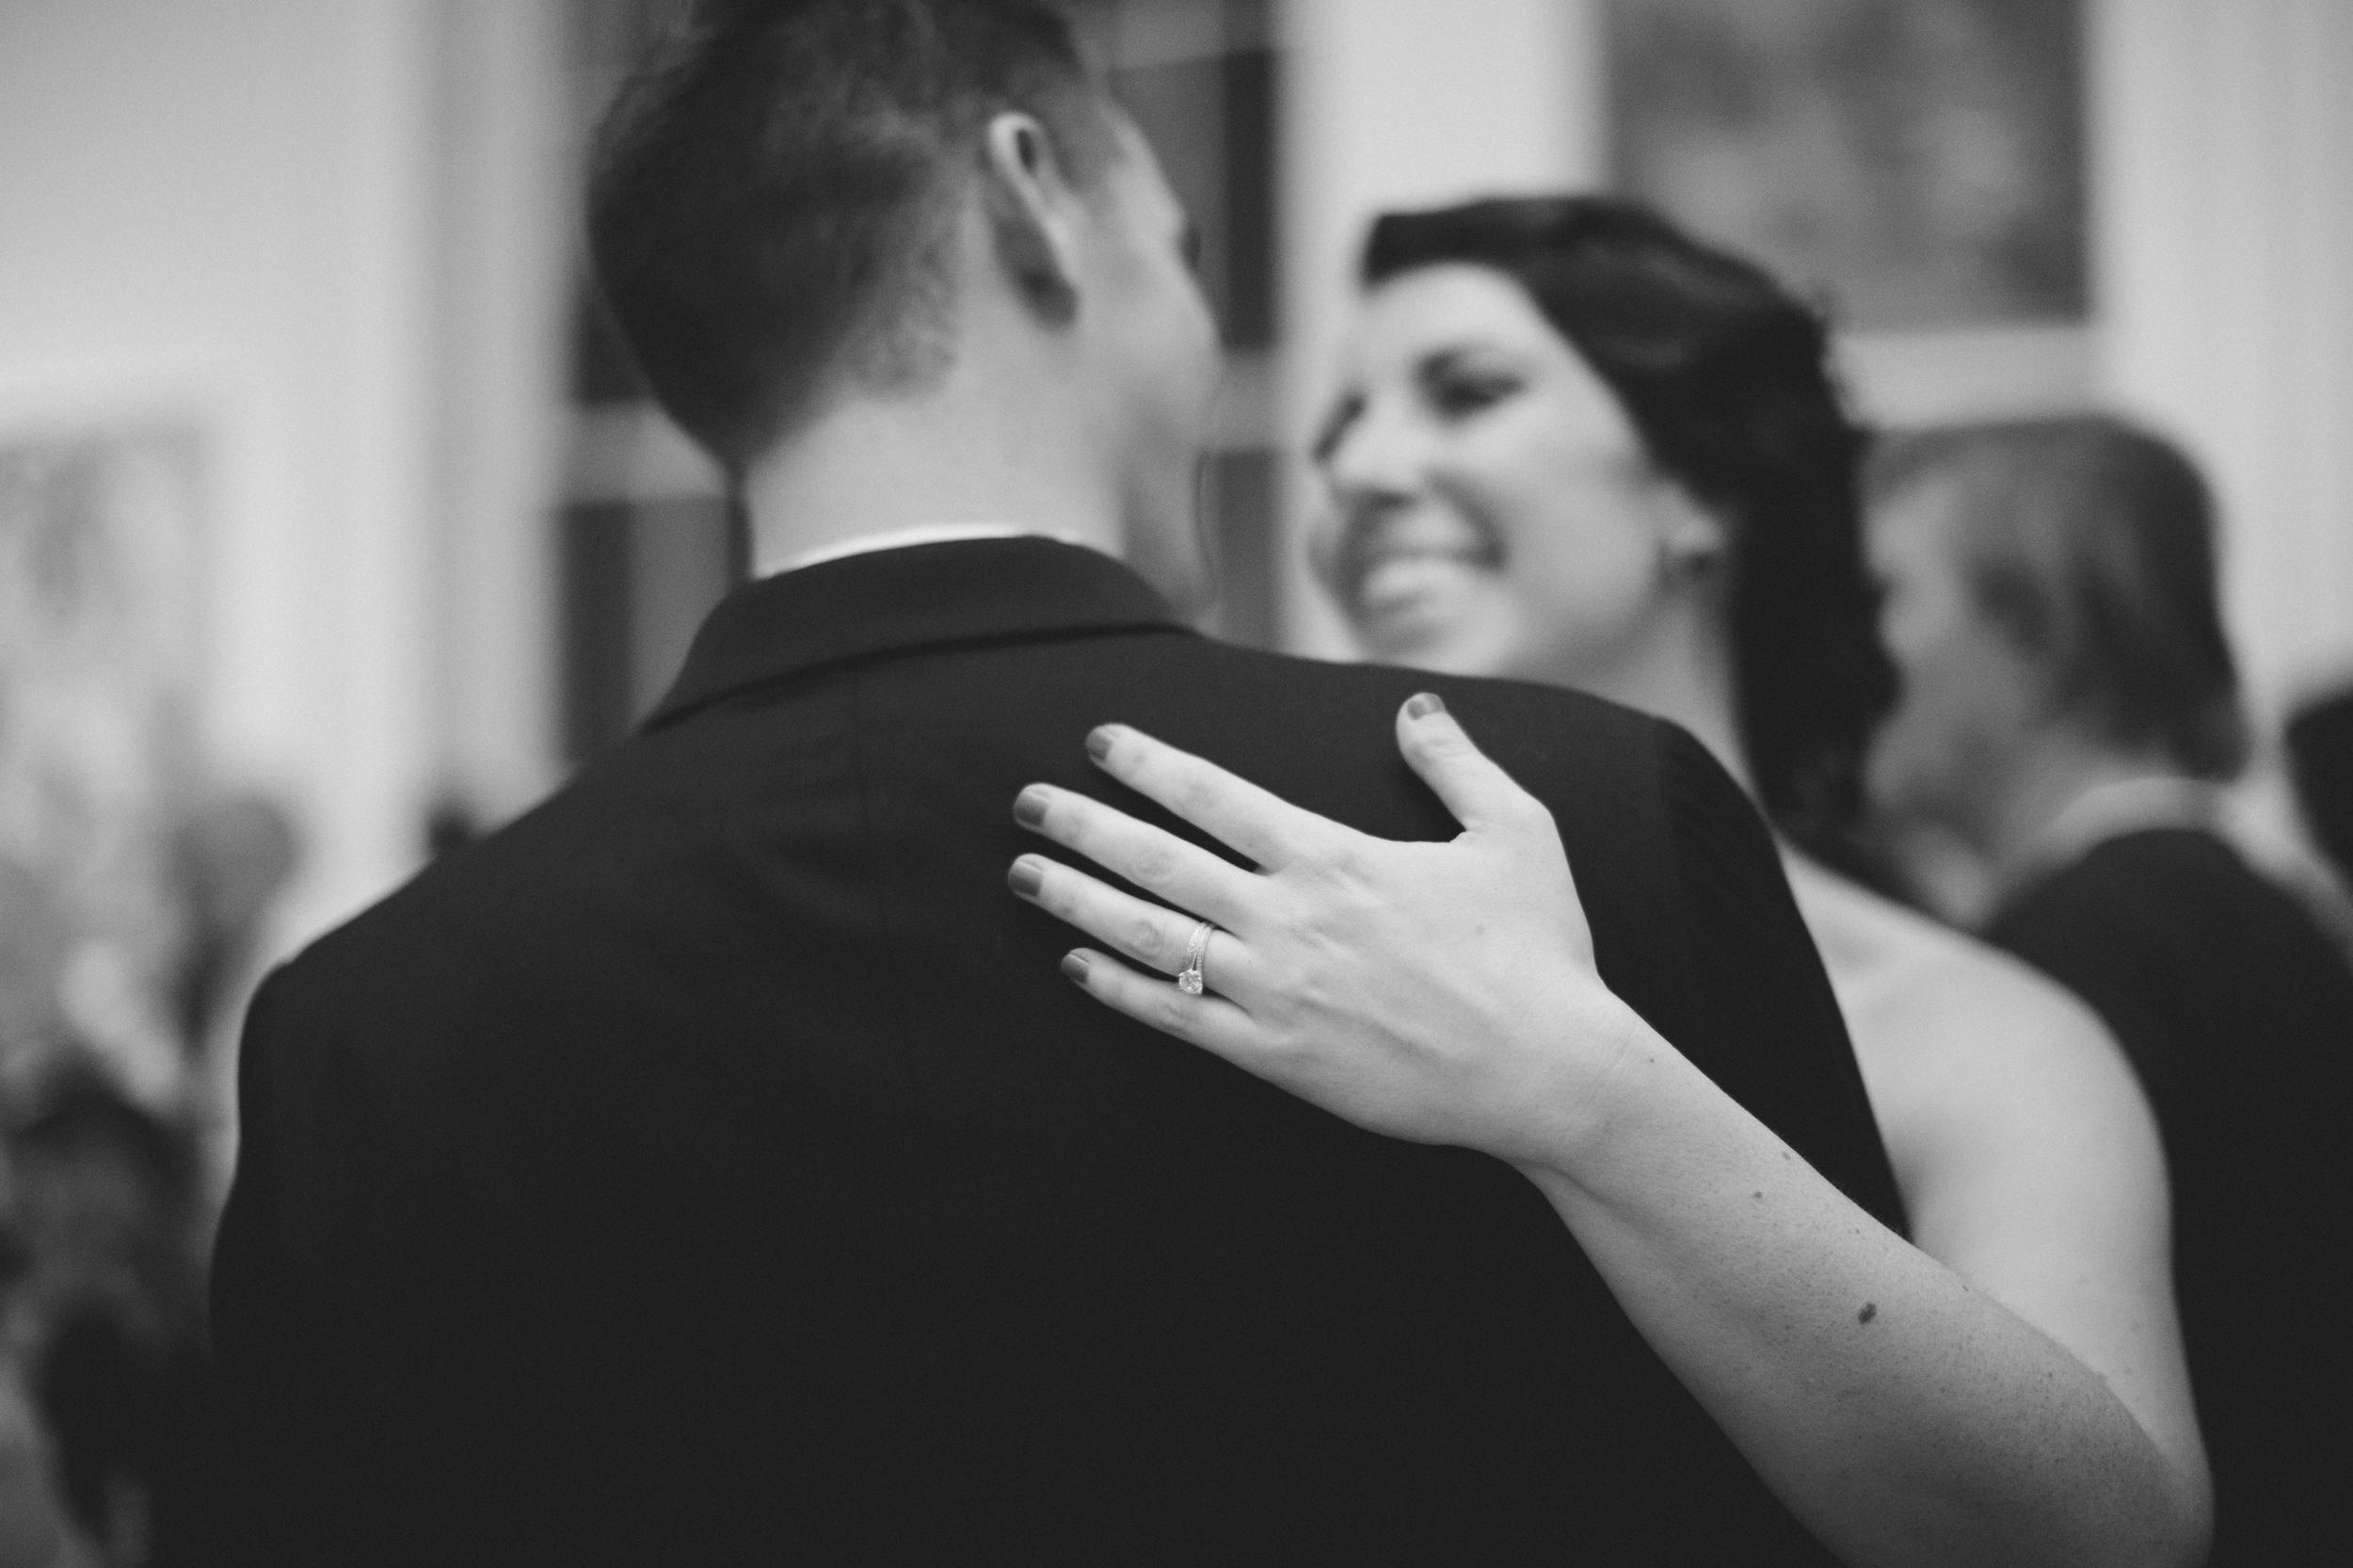 Vness_Photography_Wedding_Photographer_Washington-DC_Fish_Wedding-990.jpg